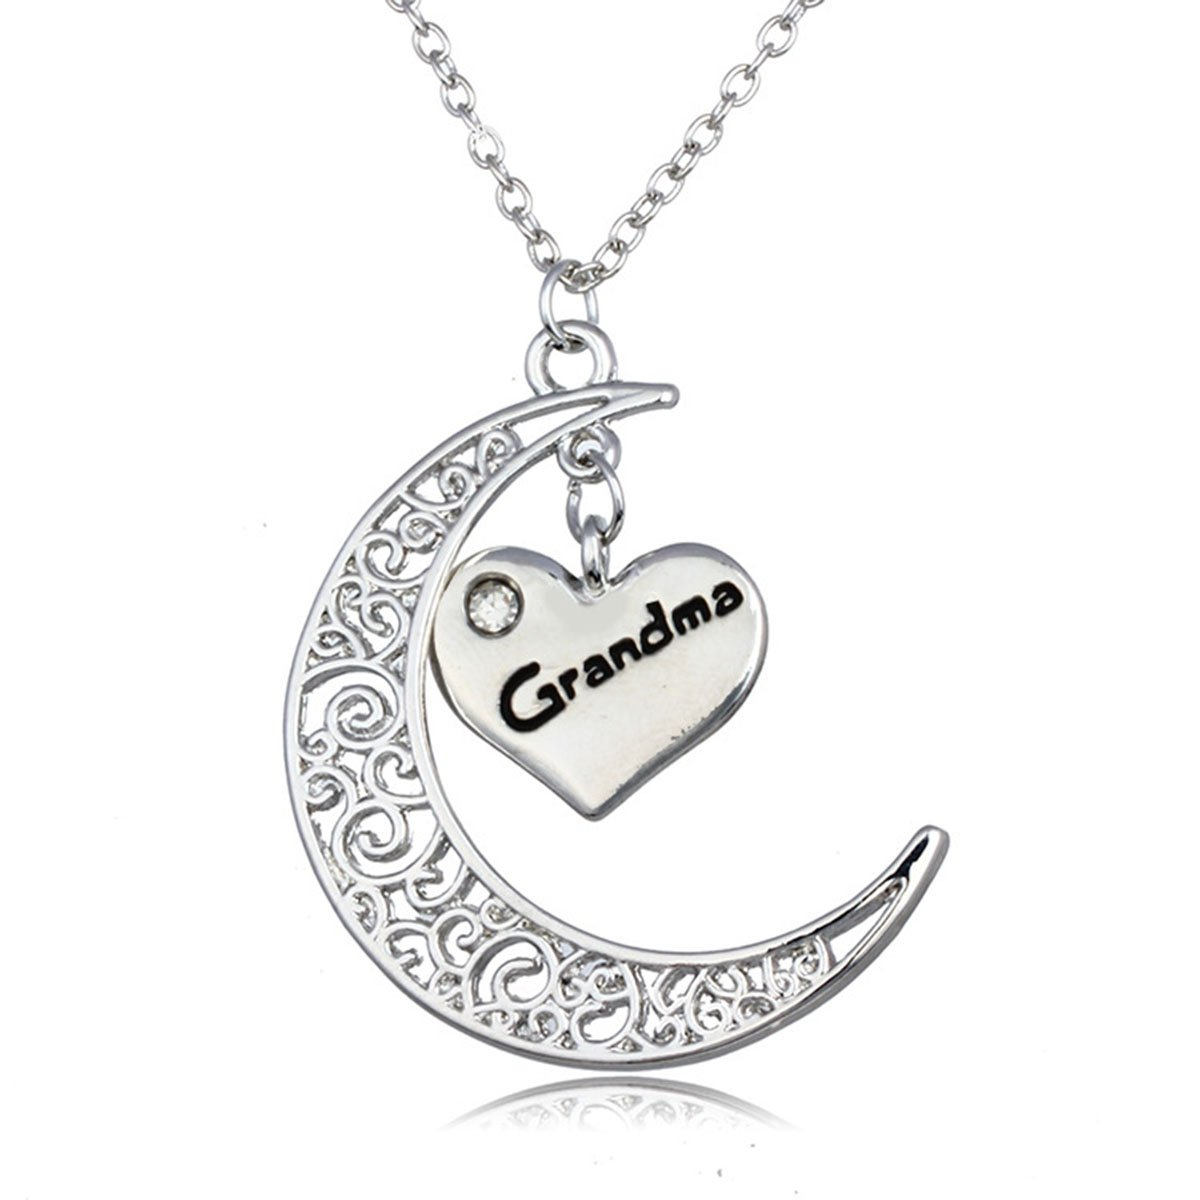 Linsh Moon Grandma Pendant Necklace Hollow Out Carved Moon Heart Letter Fashion Jewelry for Grandma